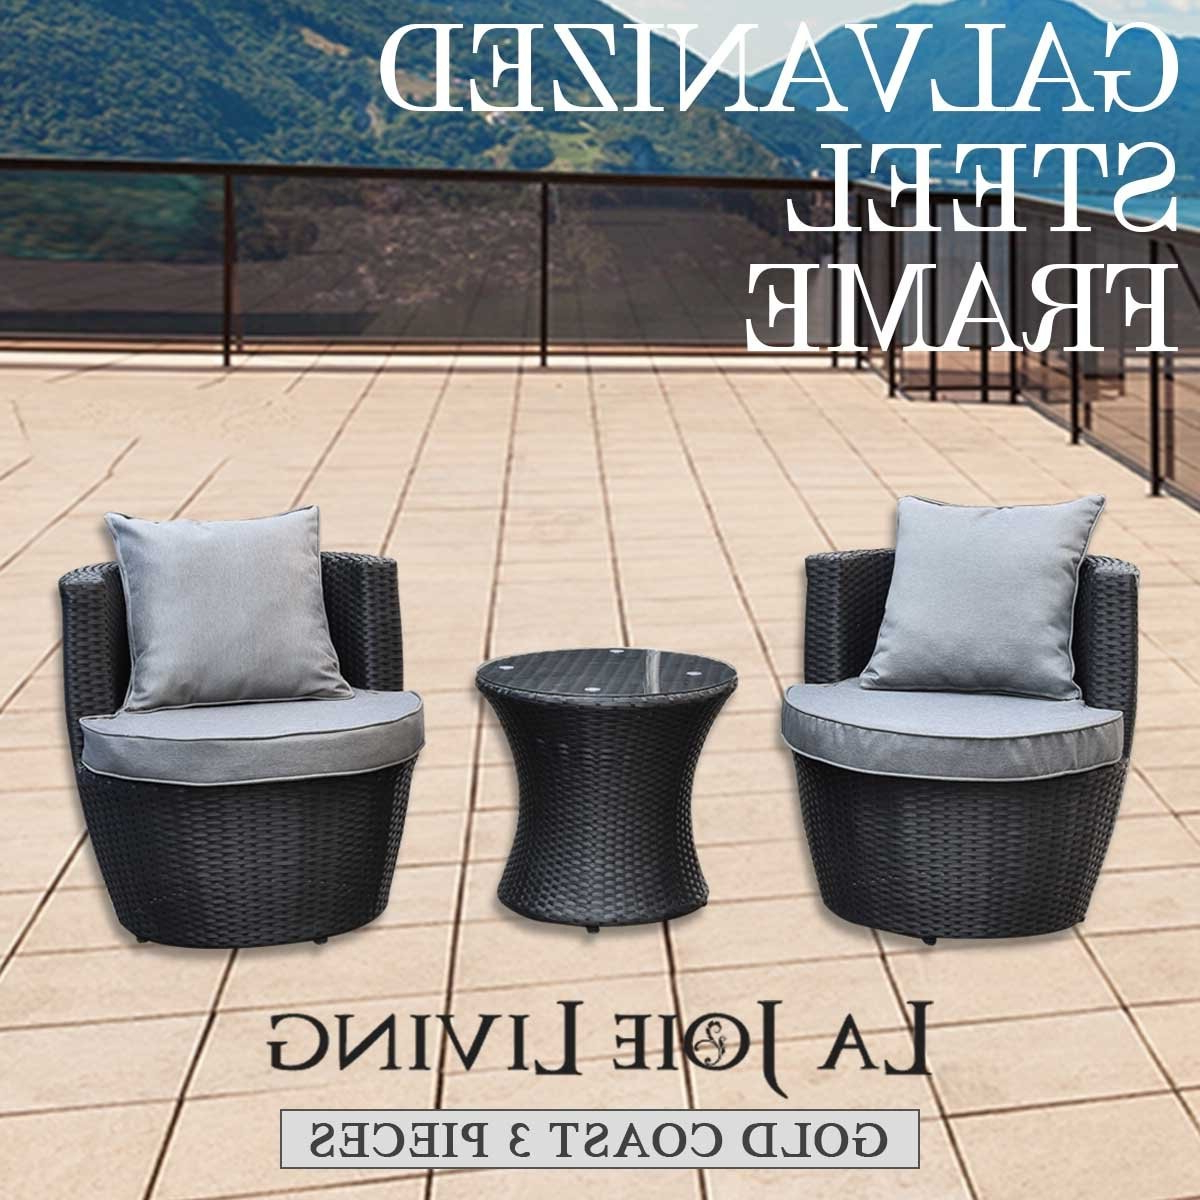 Preferred 3 Piece Patio Lounger Sets Pertaining To Gold Coast 3 Piece Outdoor Garden Balcony Set Furniture Rattan Wicker Steel Frame (View 16 of 25)